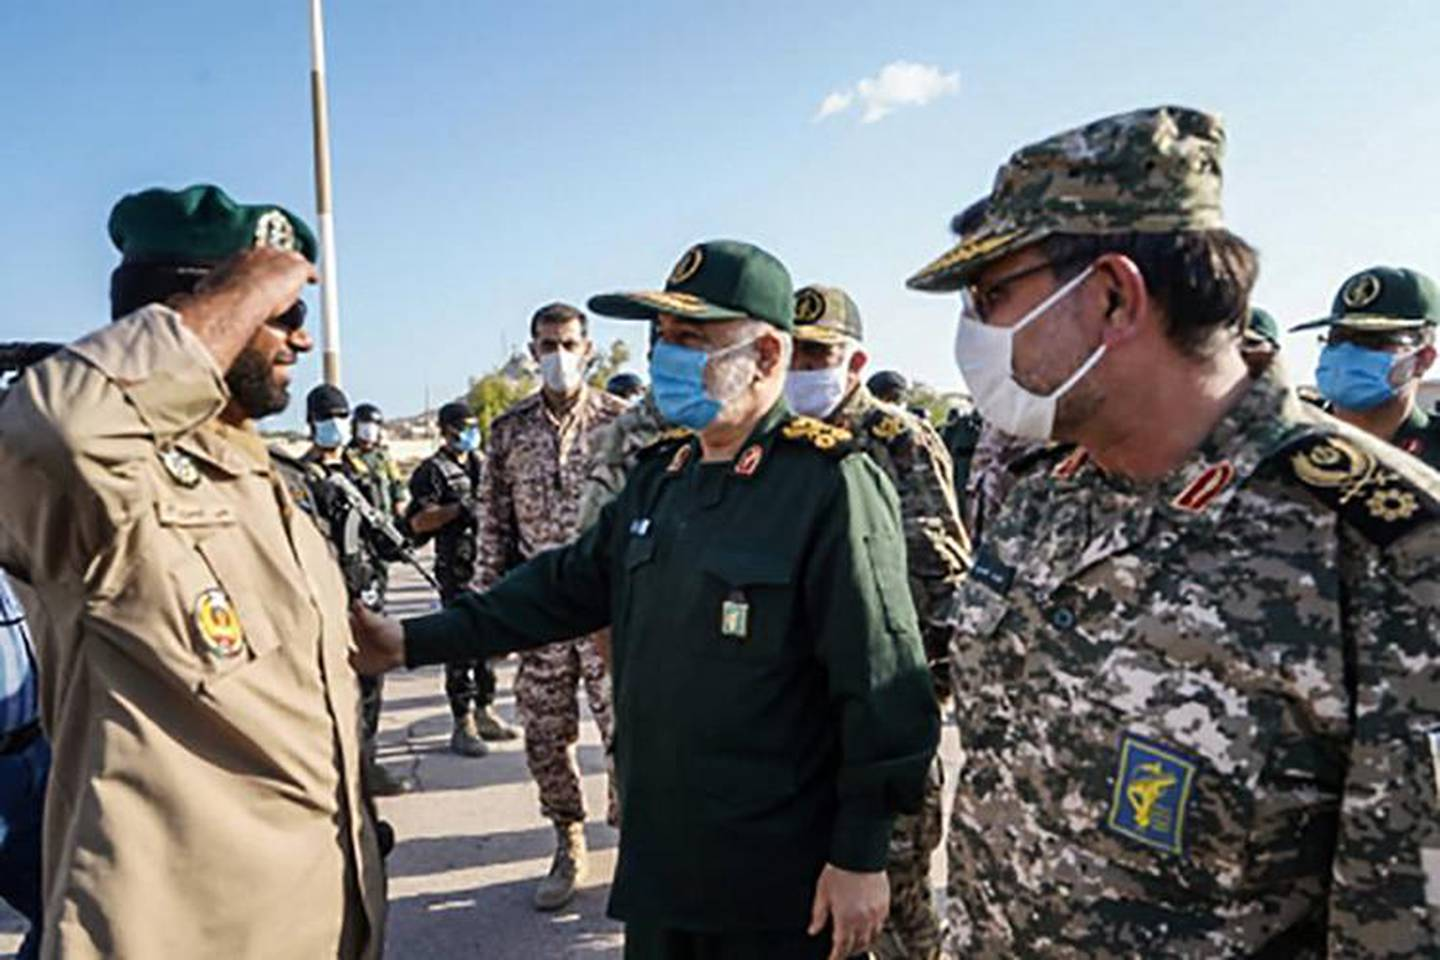 """This handout photo provided by Iran's Revolutionary Guard Corps (IRGC) official website via SEPAH News on January 2, 2021, shows Guards' chief Major General Hossein Salami (C), accompanied by Islamic Revolutionary Guard Corps navy commander Rear Admiral Alireza Tangsiri (R), inspecting troops during his visit to the island of Abu Musa, off the coast of the southern Iranian city of Bandar Lengeh facing the United Arab Emirates.  Salami vowed today to respond to any """"action the enemy takes"""" in a visit to the strategic island in the Gulf, amid rising tensions with the US,  speaking on the eve of the first anniversary of the US killing of top Iranian military commander Qasem Soleimani in a Baghdad drone strike on January 3, 2020 - XGTY / RESTRICTED TO EDITORIAL USE - MANDATORY CREDIT """"AFP PHOTO / Iran's Revolutionary Guard via SEPAH NEWS"""" - NO MARKETING - NO ADVERTISING CAMPAIGNS - DISTRIBUTED AS A SERVICE TO CLIENTS   / AFP / SEPAH NEWS / - / XGTY / RESTRICTED TO EDITORIAL USE - MANDATORY CREDIT """"AFP PHOTO / Iran's Revolutionary Guard via SEPAH NEWS"""" - NO MARKETING - NO ADVERTISING CAMPAIGNS - DISTRIBUTED AS A SERVICE TO CLIENTS"""